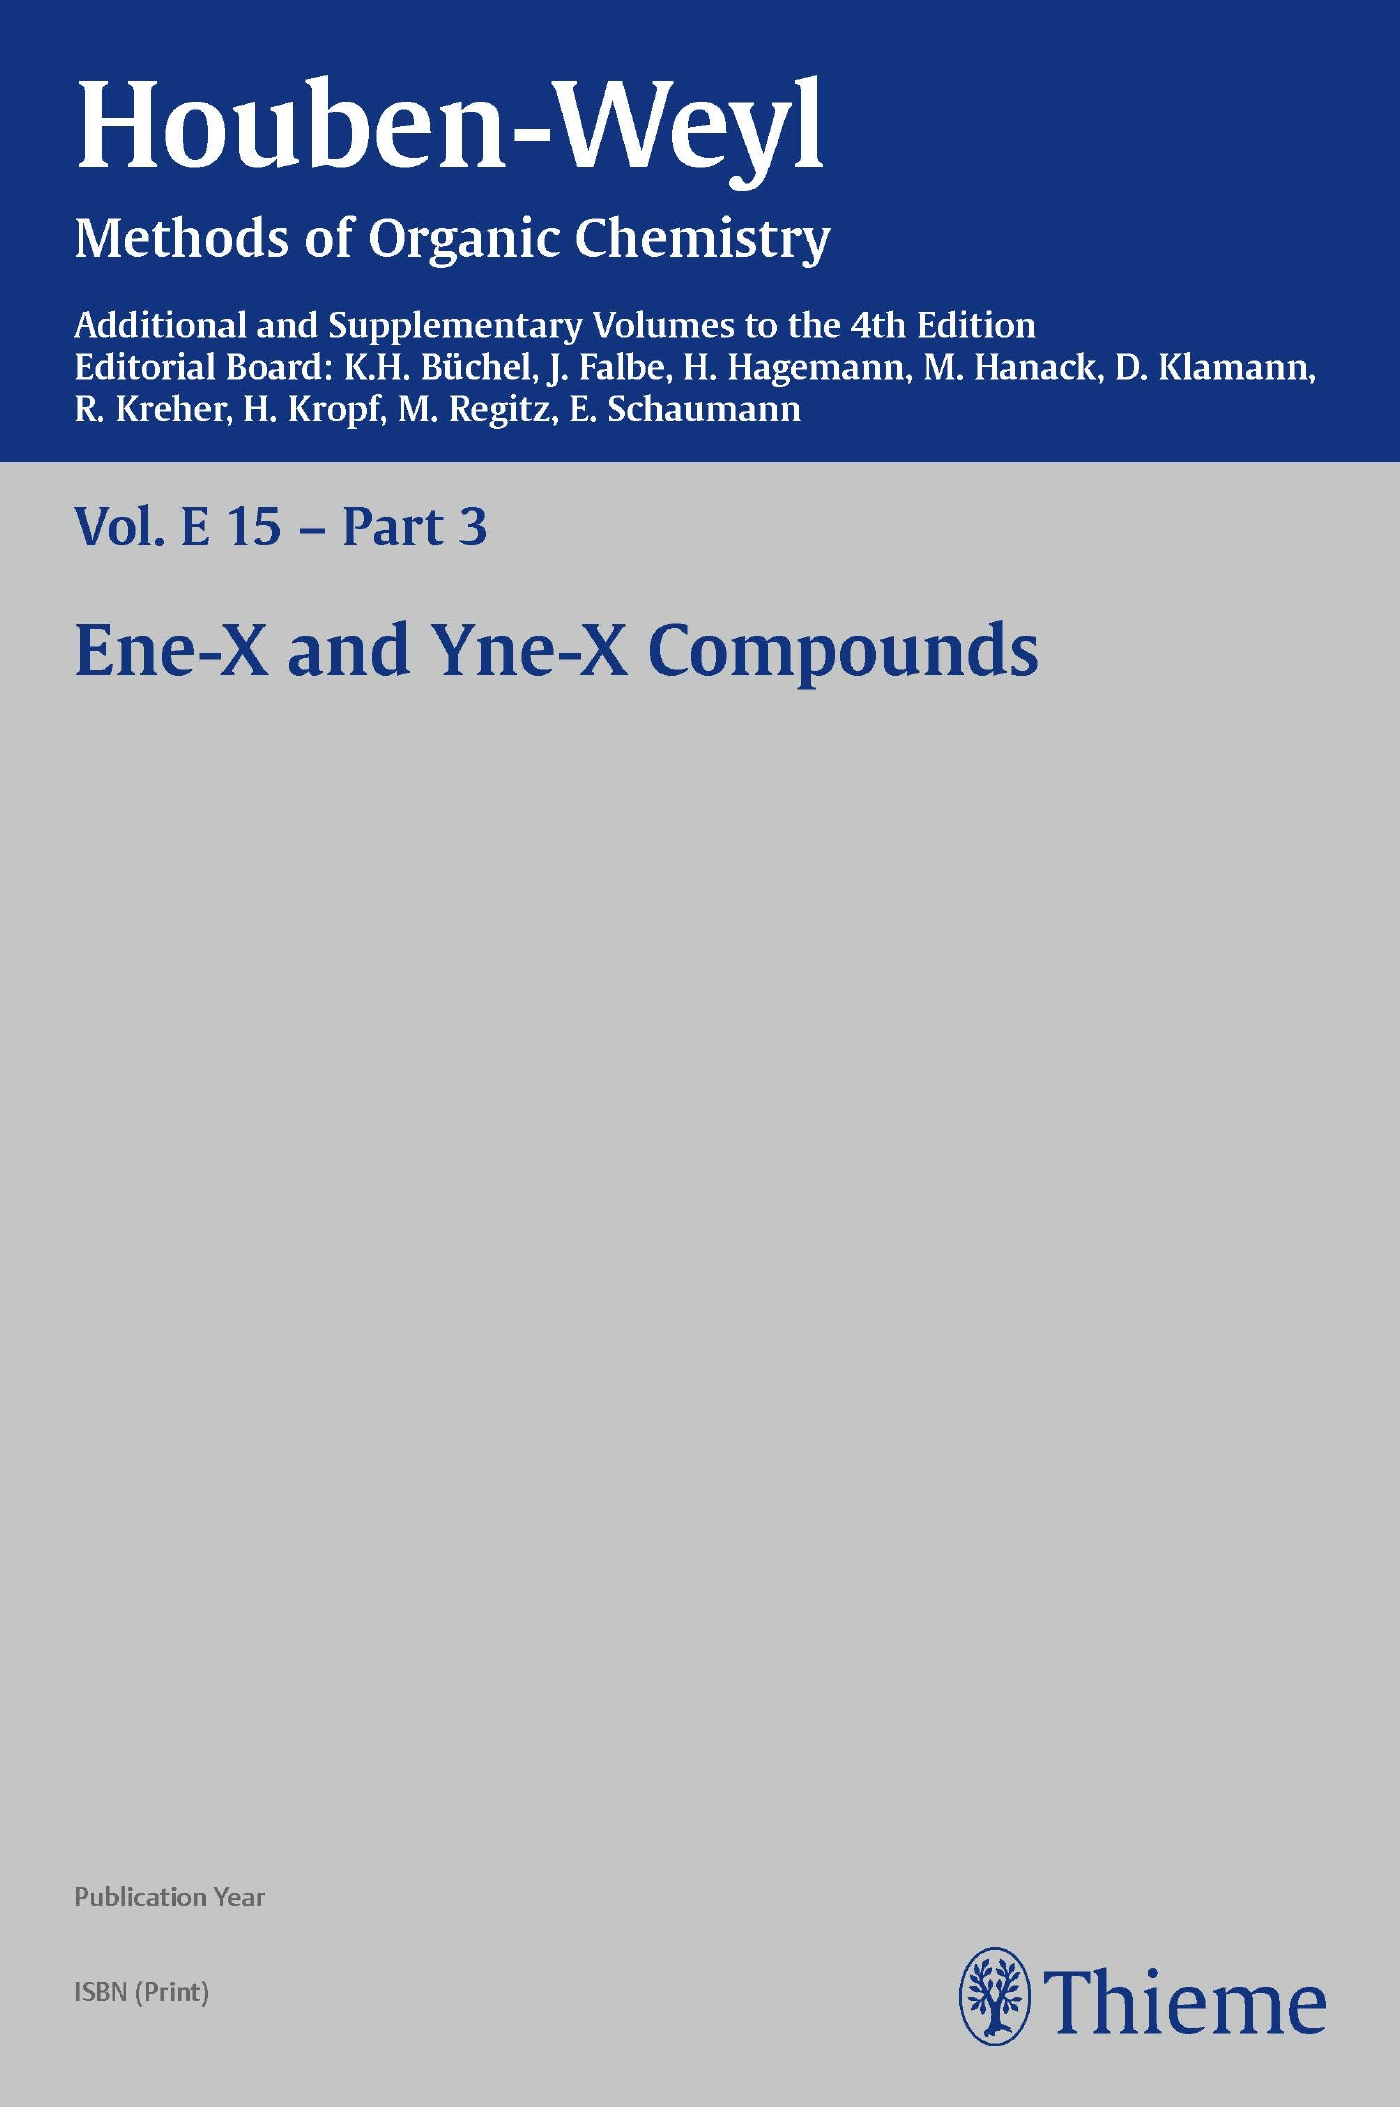 Houben-Weyl Methods of Organic Chemistry Vol. E 15/3, 4th Edition Supplement